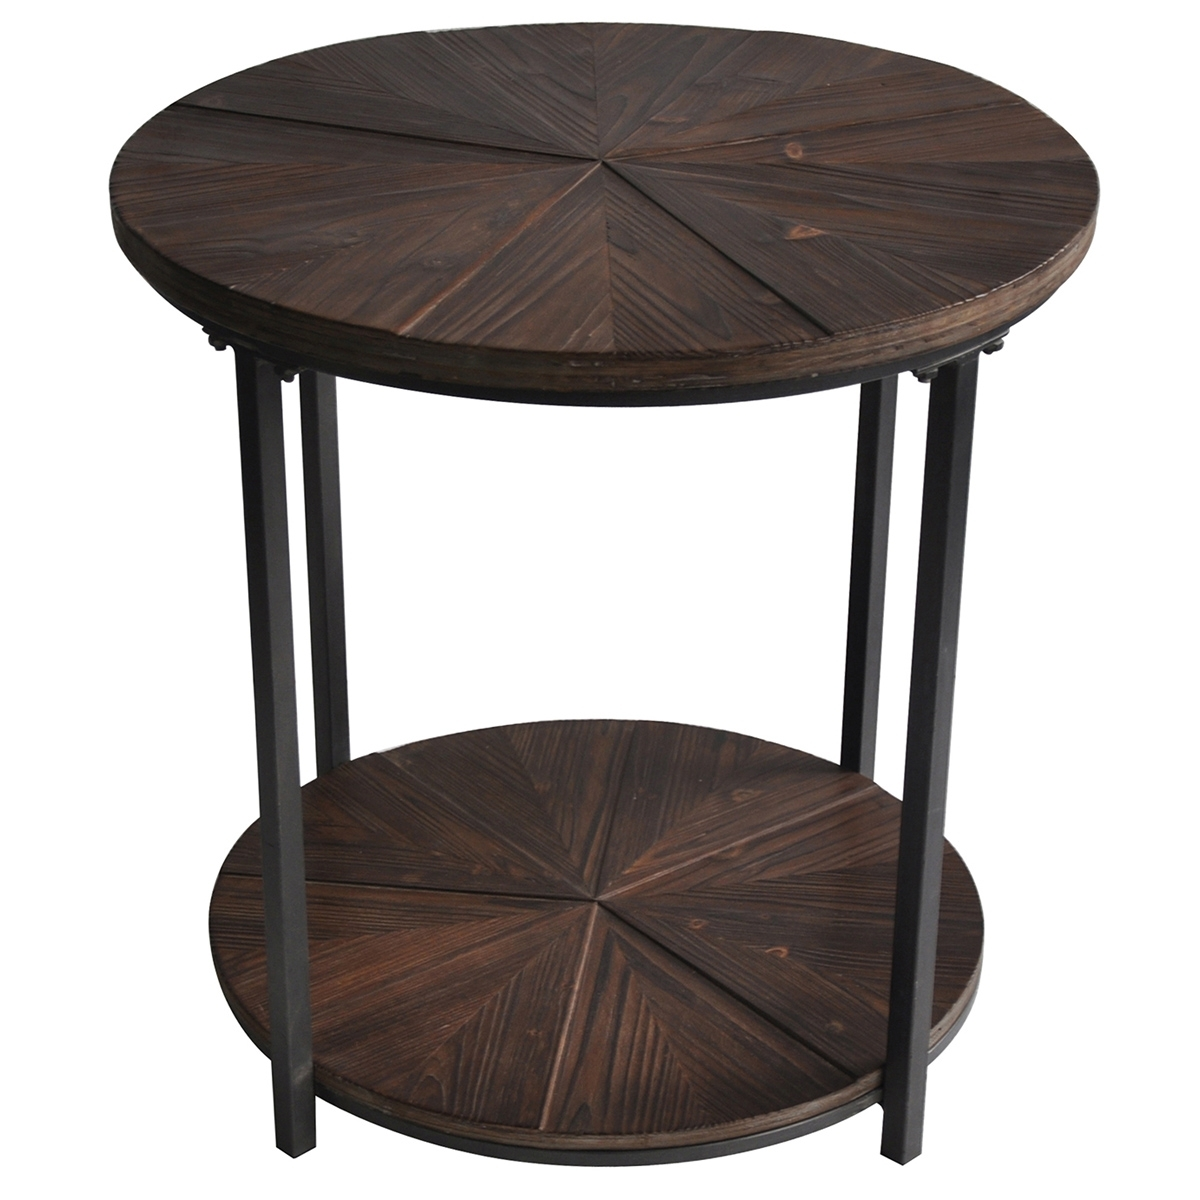 Big Trunk : The Terrific Fun Black Metal And Wood End Tables Image with Jackson Marble Side Tables (Image 6 of 30)